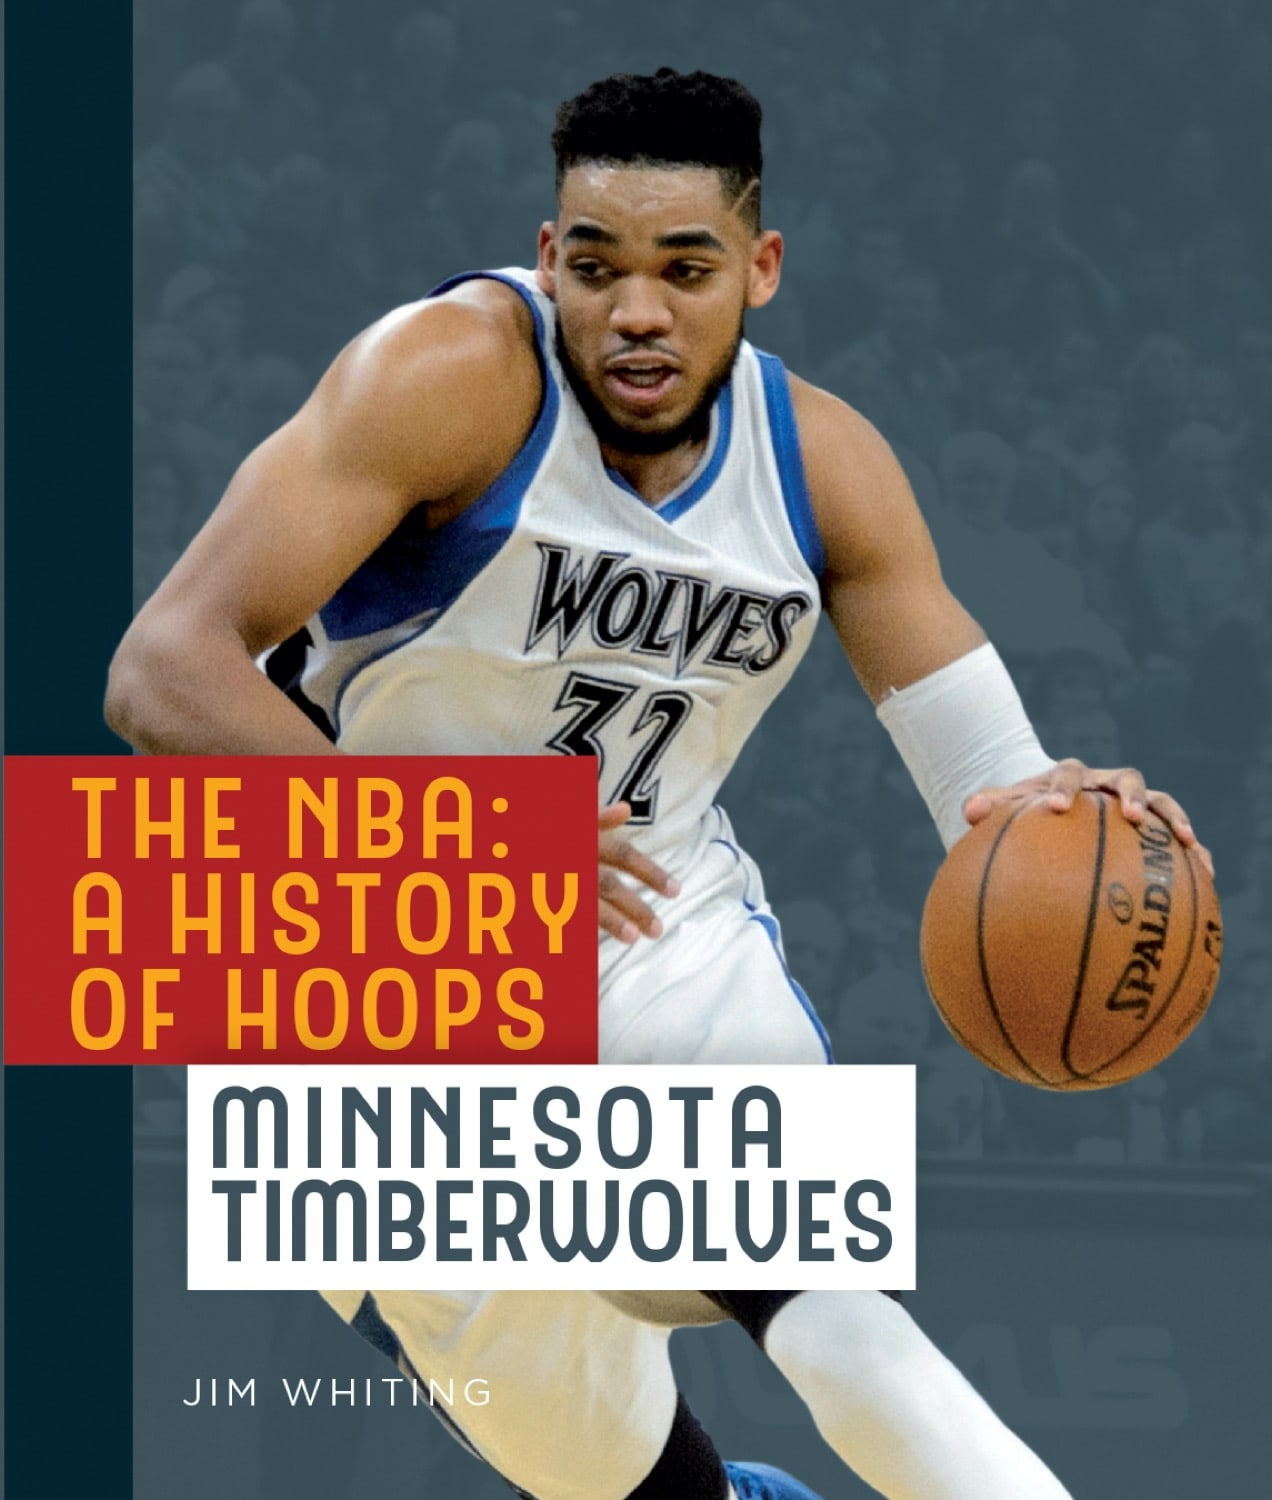 The NBA: A History of Hoops: Minnesota Timberwolves